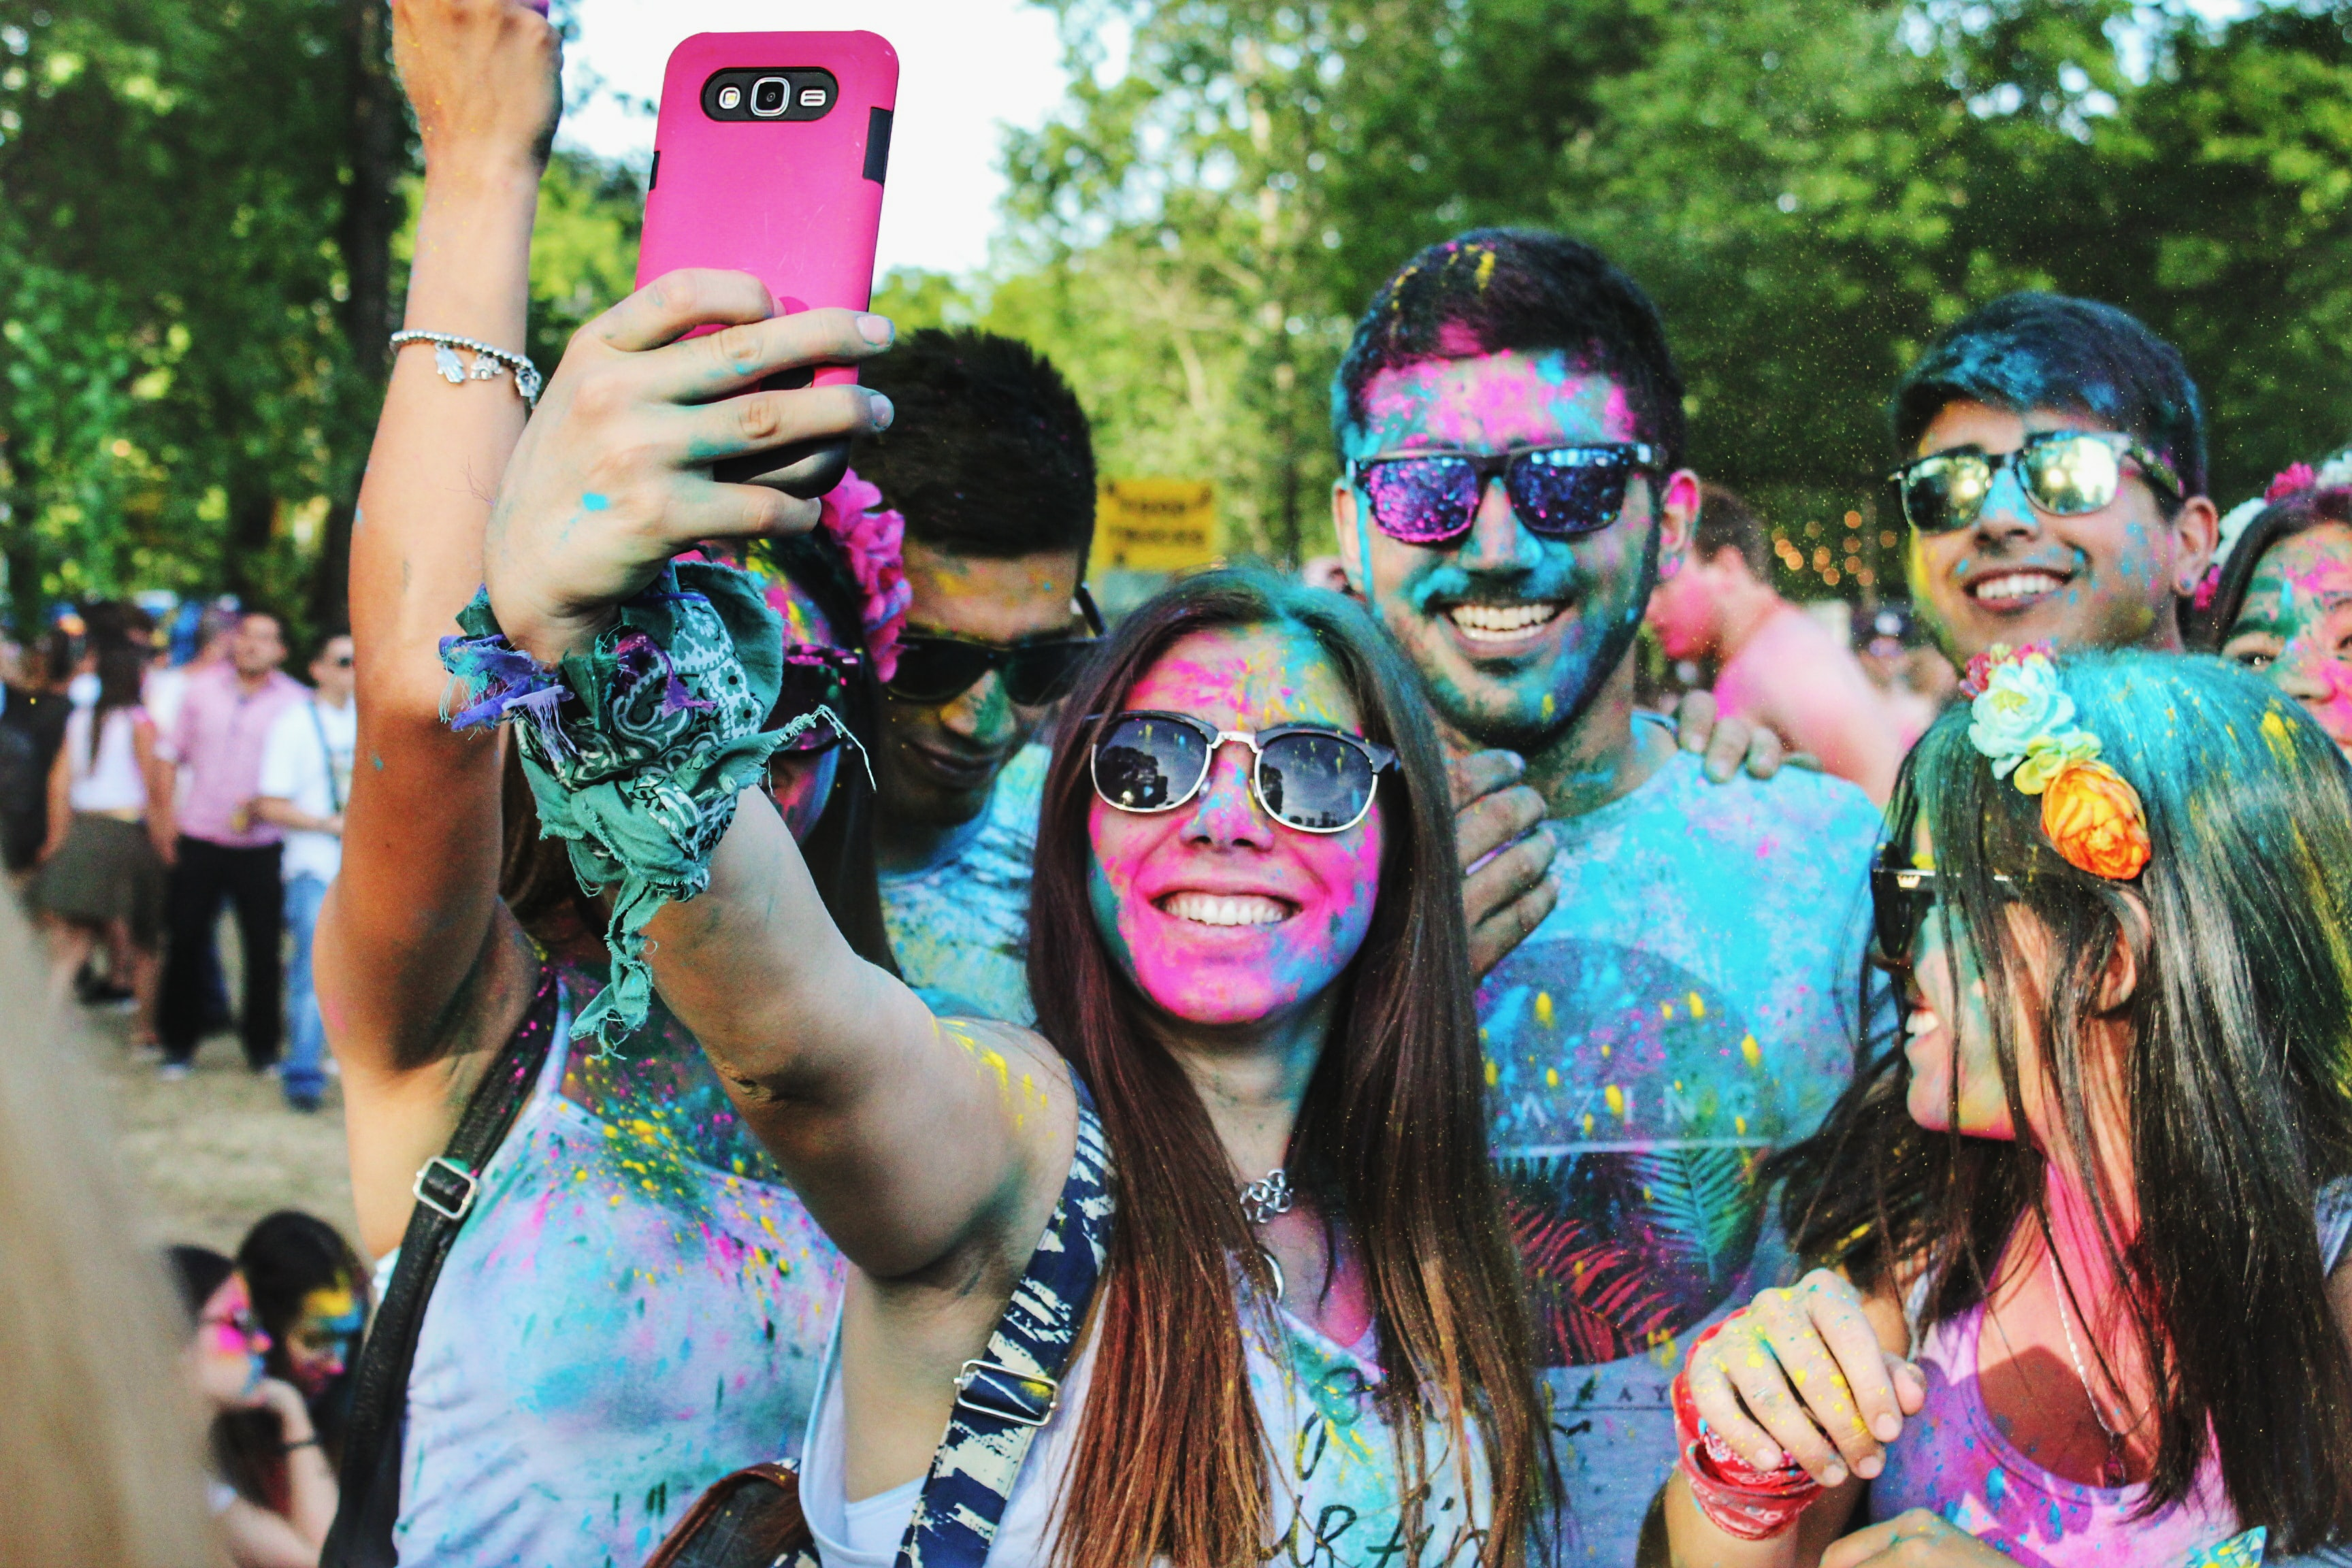 group of people taking groufie with face paints on their face